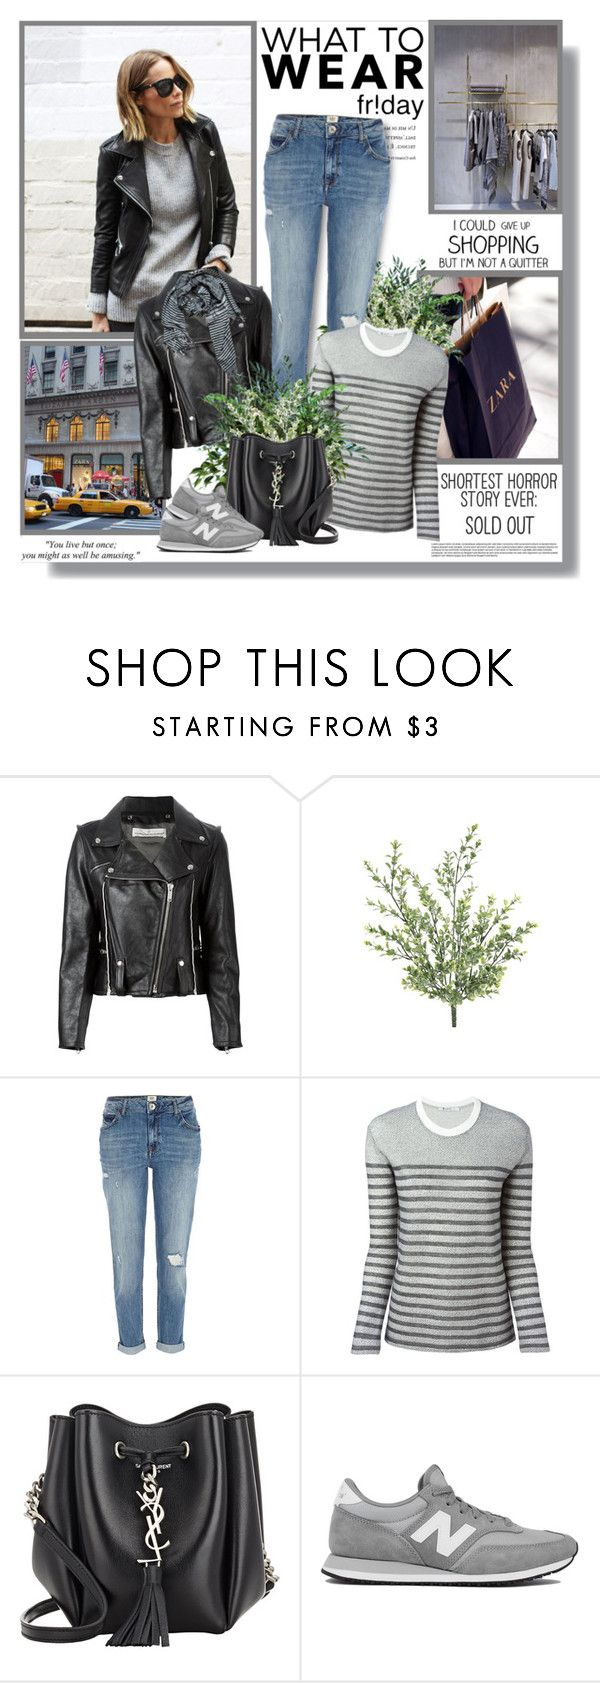 """What to Wear: Black Friday Shopping"" by lilly-2711 ❤ liked on Polyvore featuring Whiteley, Golden Goose, River Island, T By Alexander Wang, Yves Saint Laurent, New Balance and Zara"